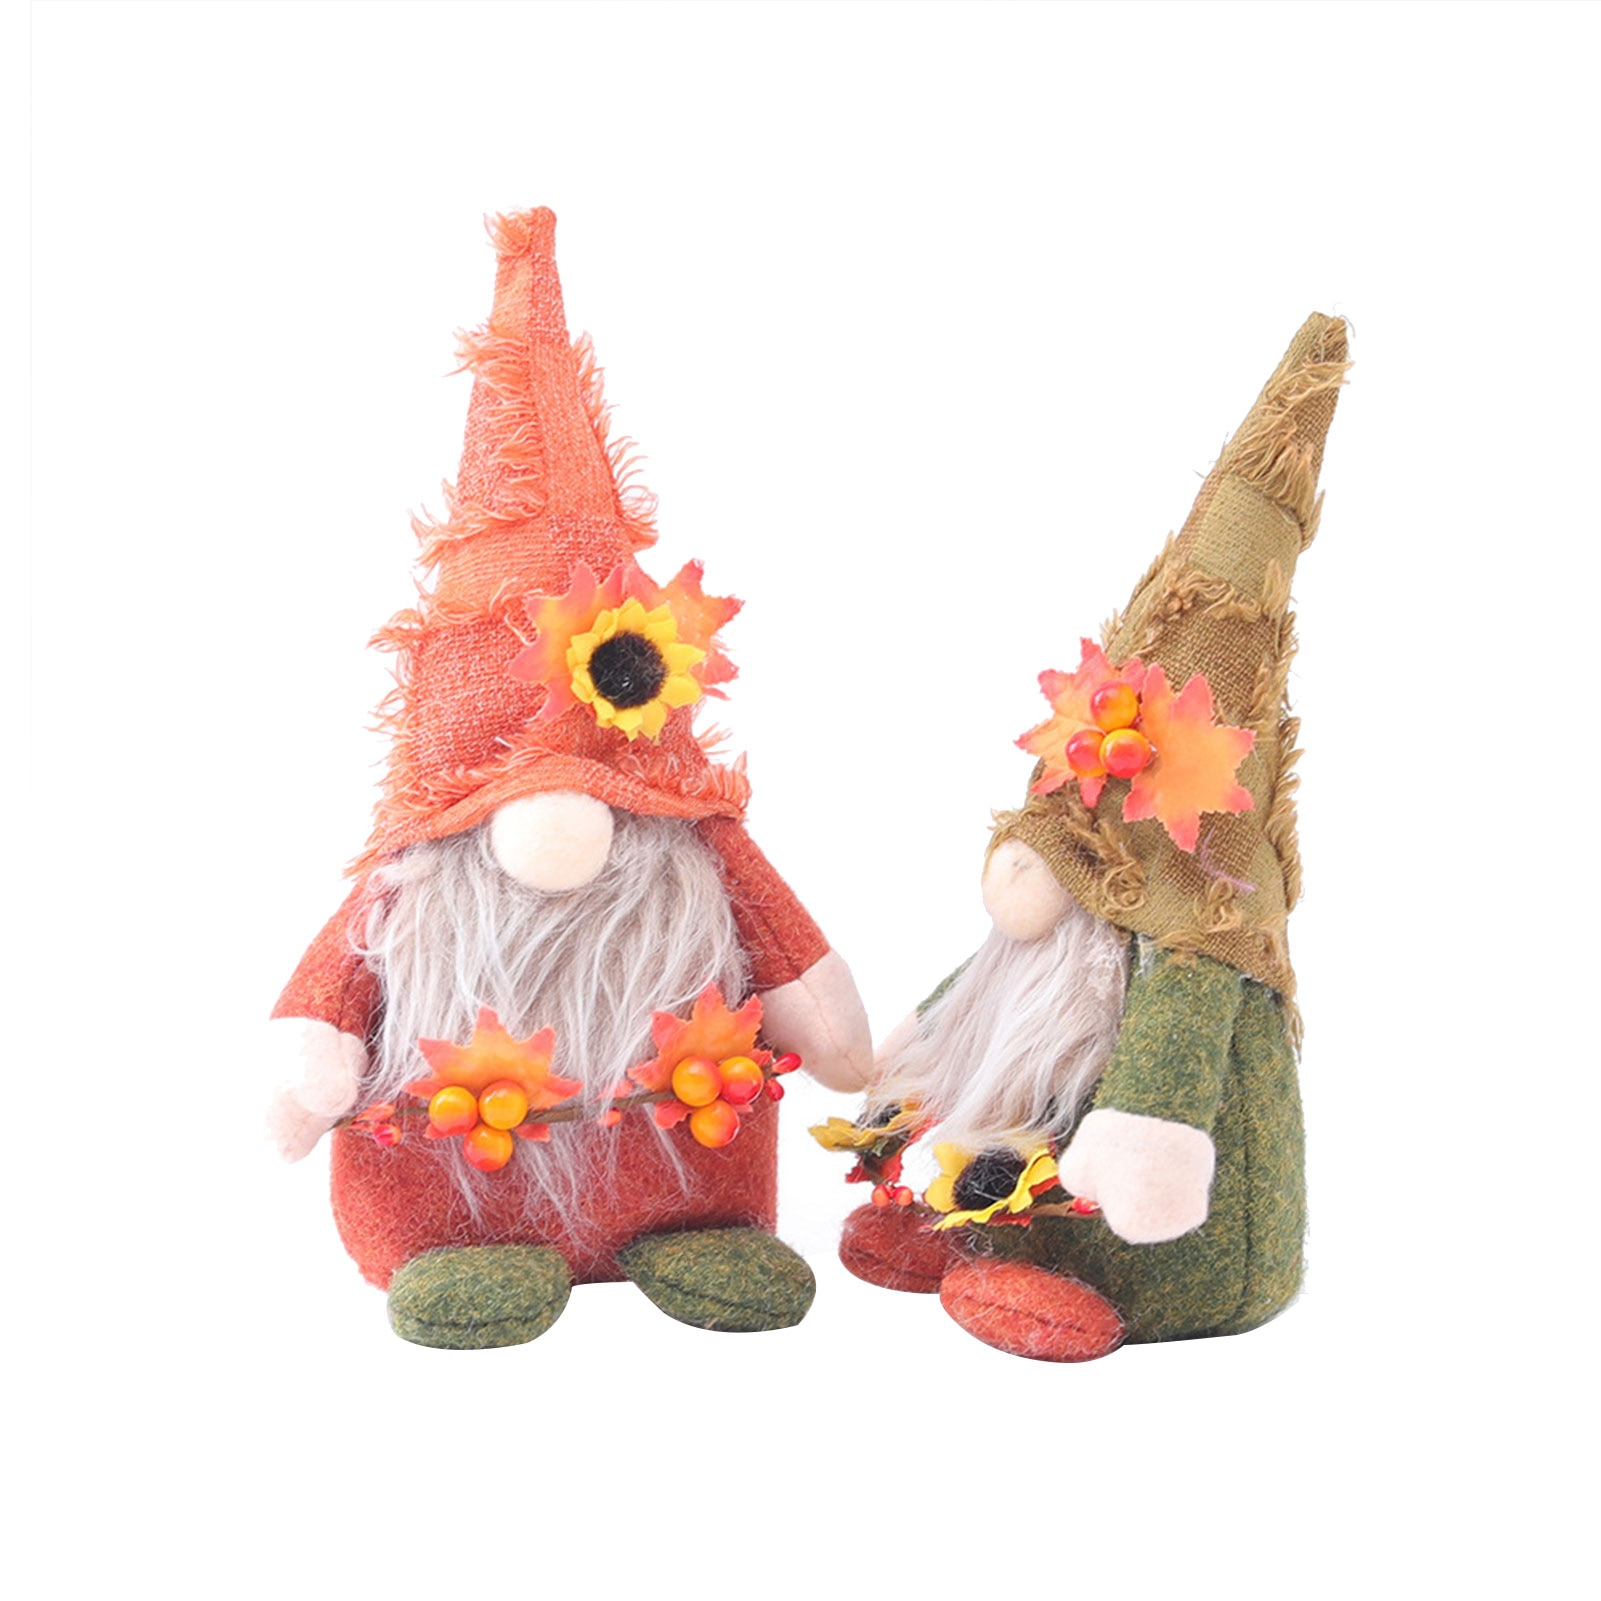 Sunflower Faceless Doll Plush Toy Handmade Cute Dwarf Plush Faceless Elf Decoration Doll for home Garden Room Decor Ornaments 4pcs magic hair elf trolls ugly baby troll bobby princess base model toy car decoration ornaments